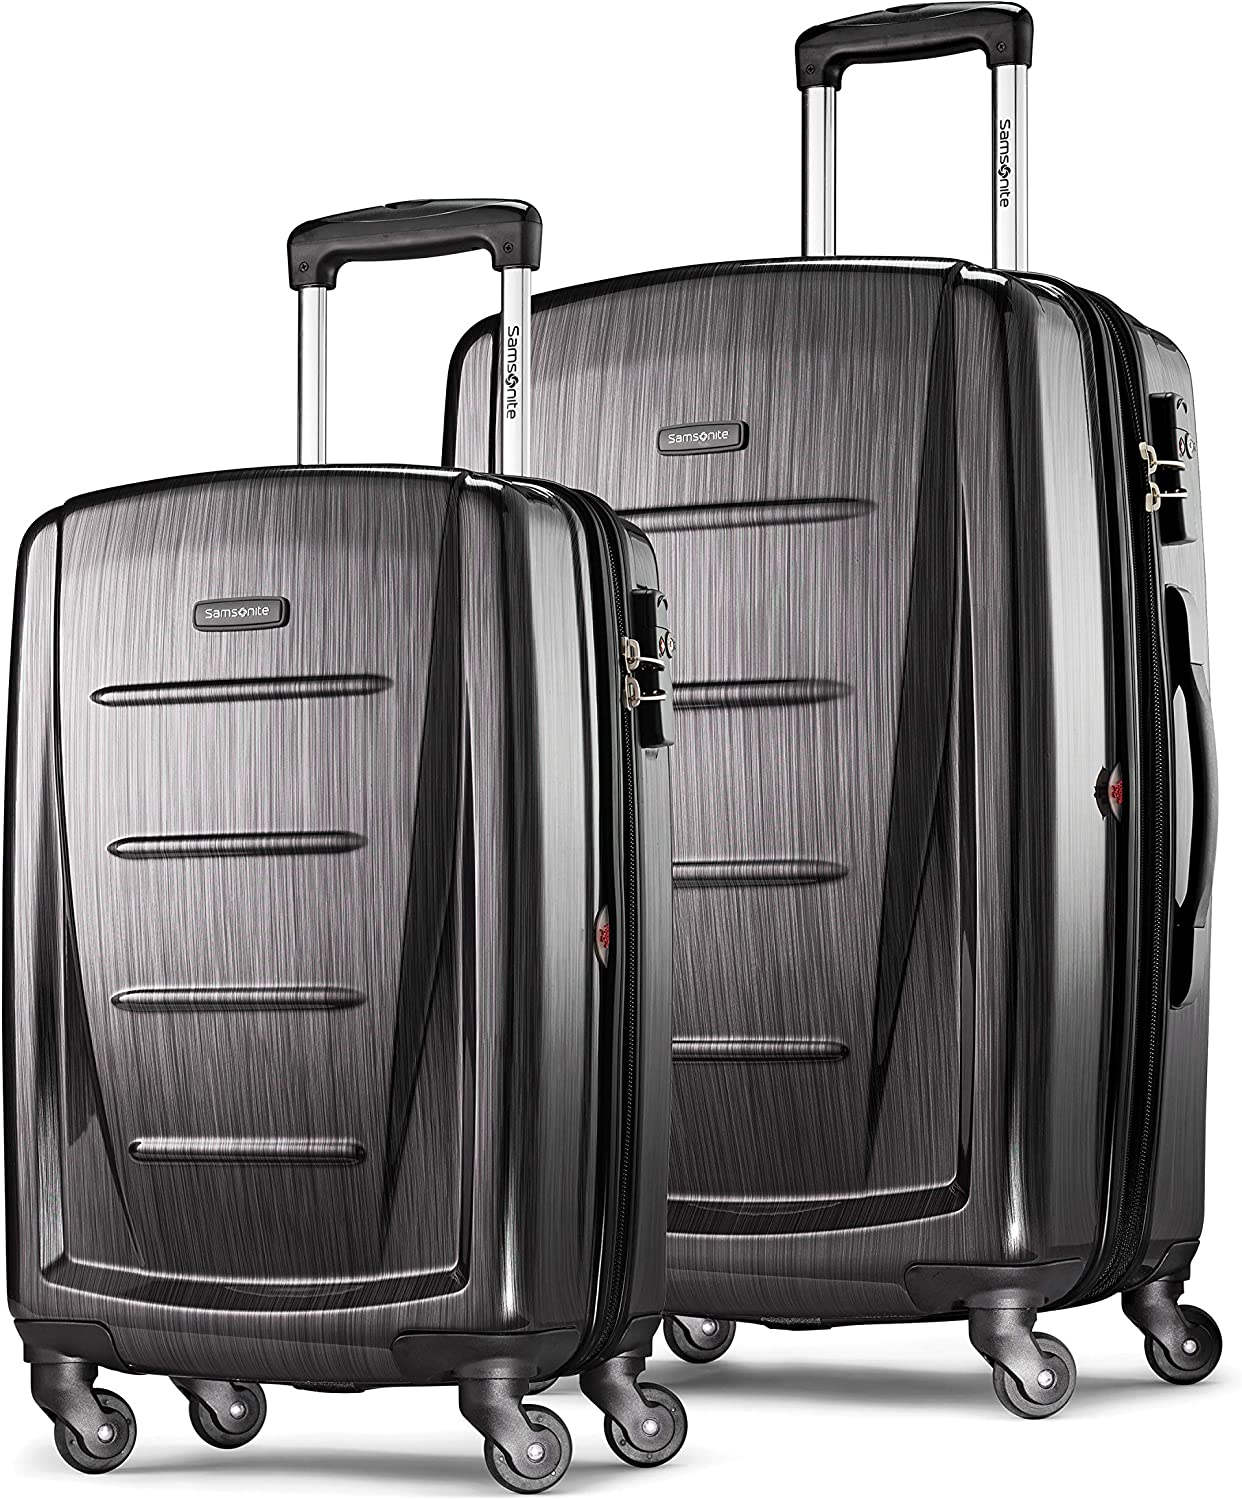 Samsonite Winfield 2 Hardside Expandable Luggage with Spinner Wheels, Charcoal, 2-Piece Set (20/24)